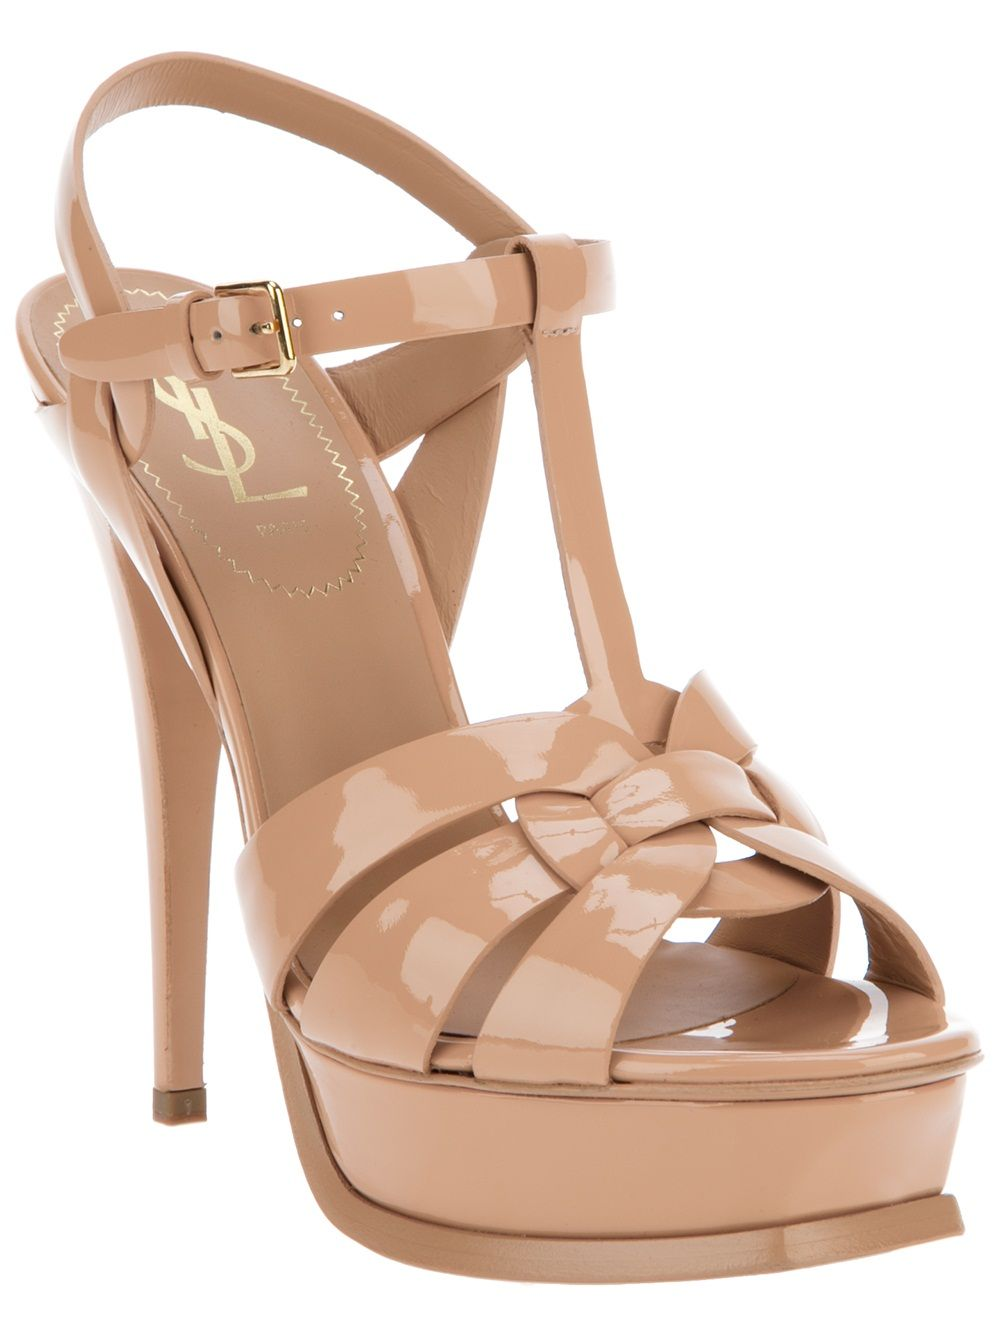 f0c3b944157 YSL Patent Leather Tribute Sandal | Shoes I Love | Shoes, Strappy ...